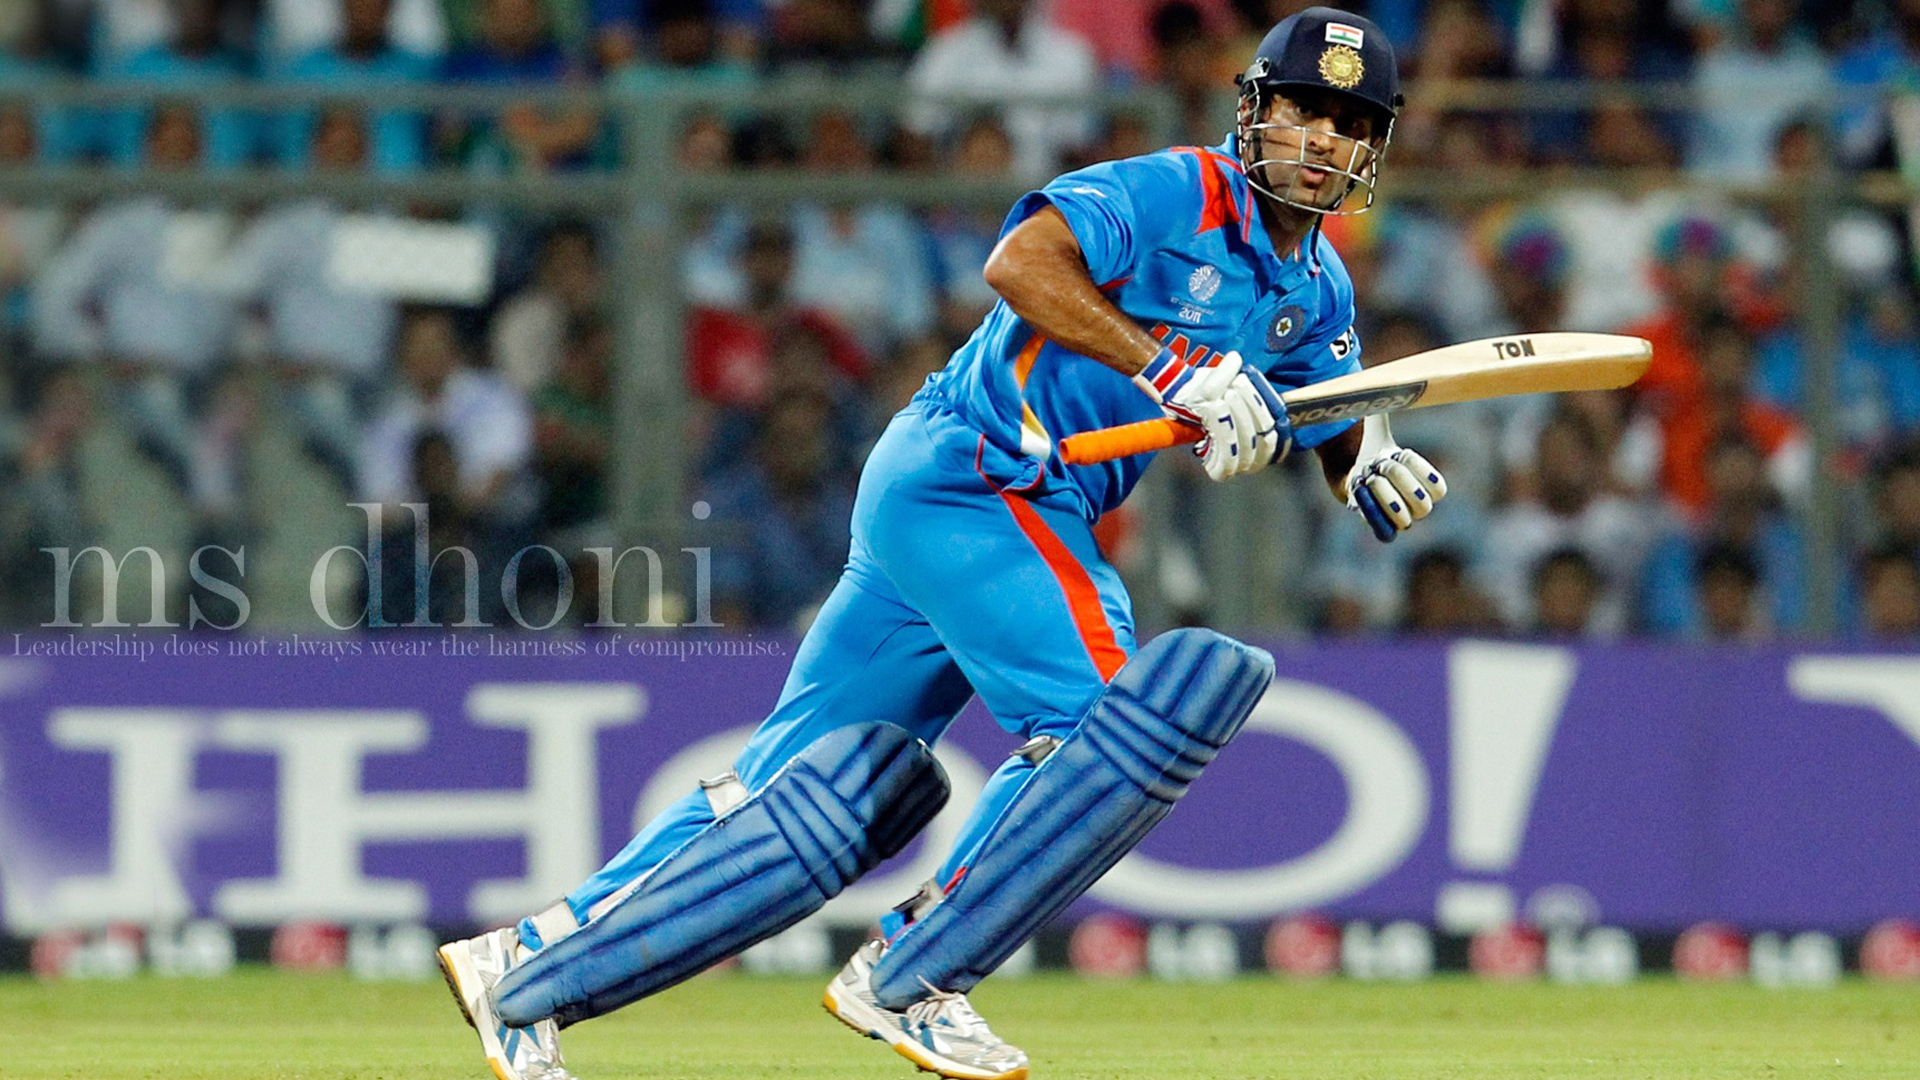 Dhoni 4k Wallpapers For Your Desktop Or Mobile Screen Free And Easy To Download